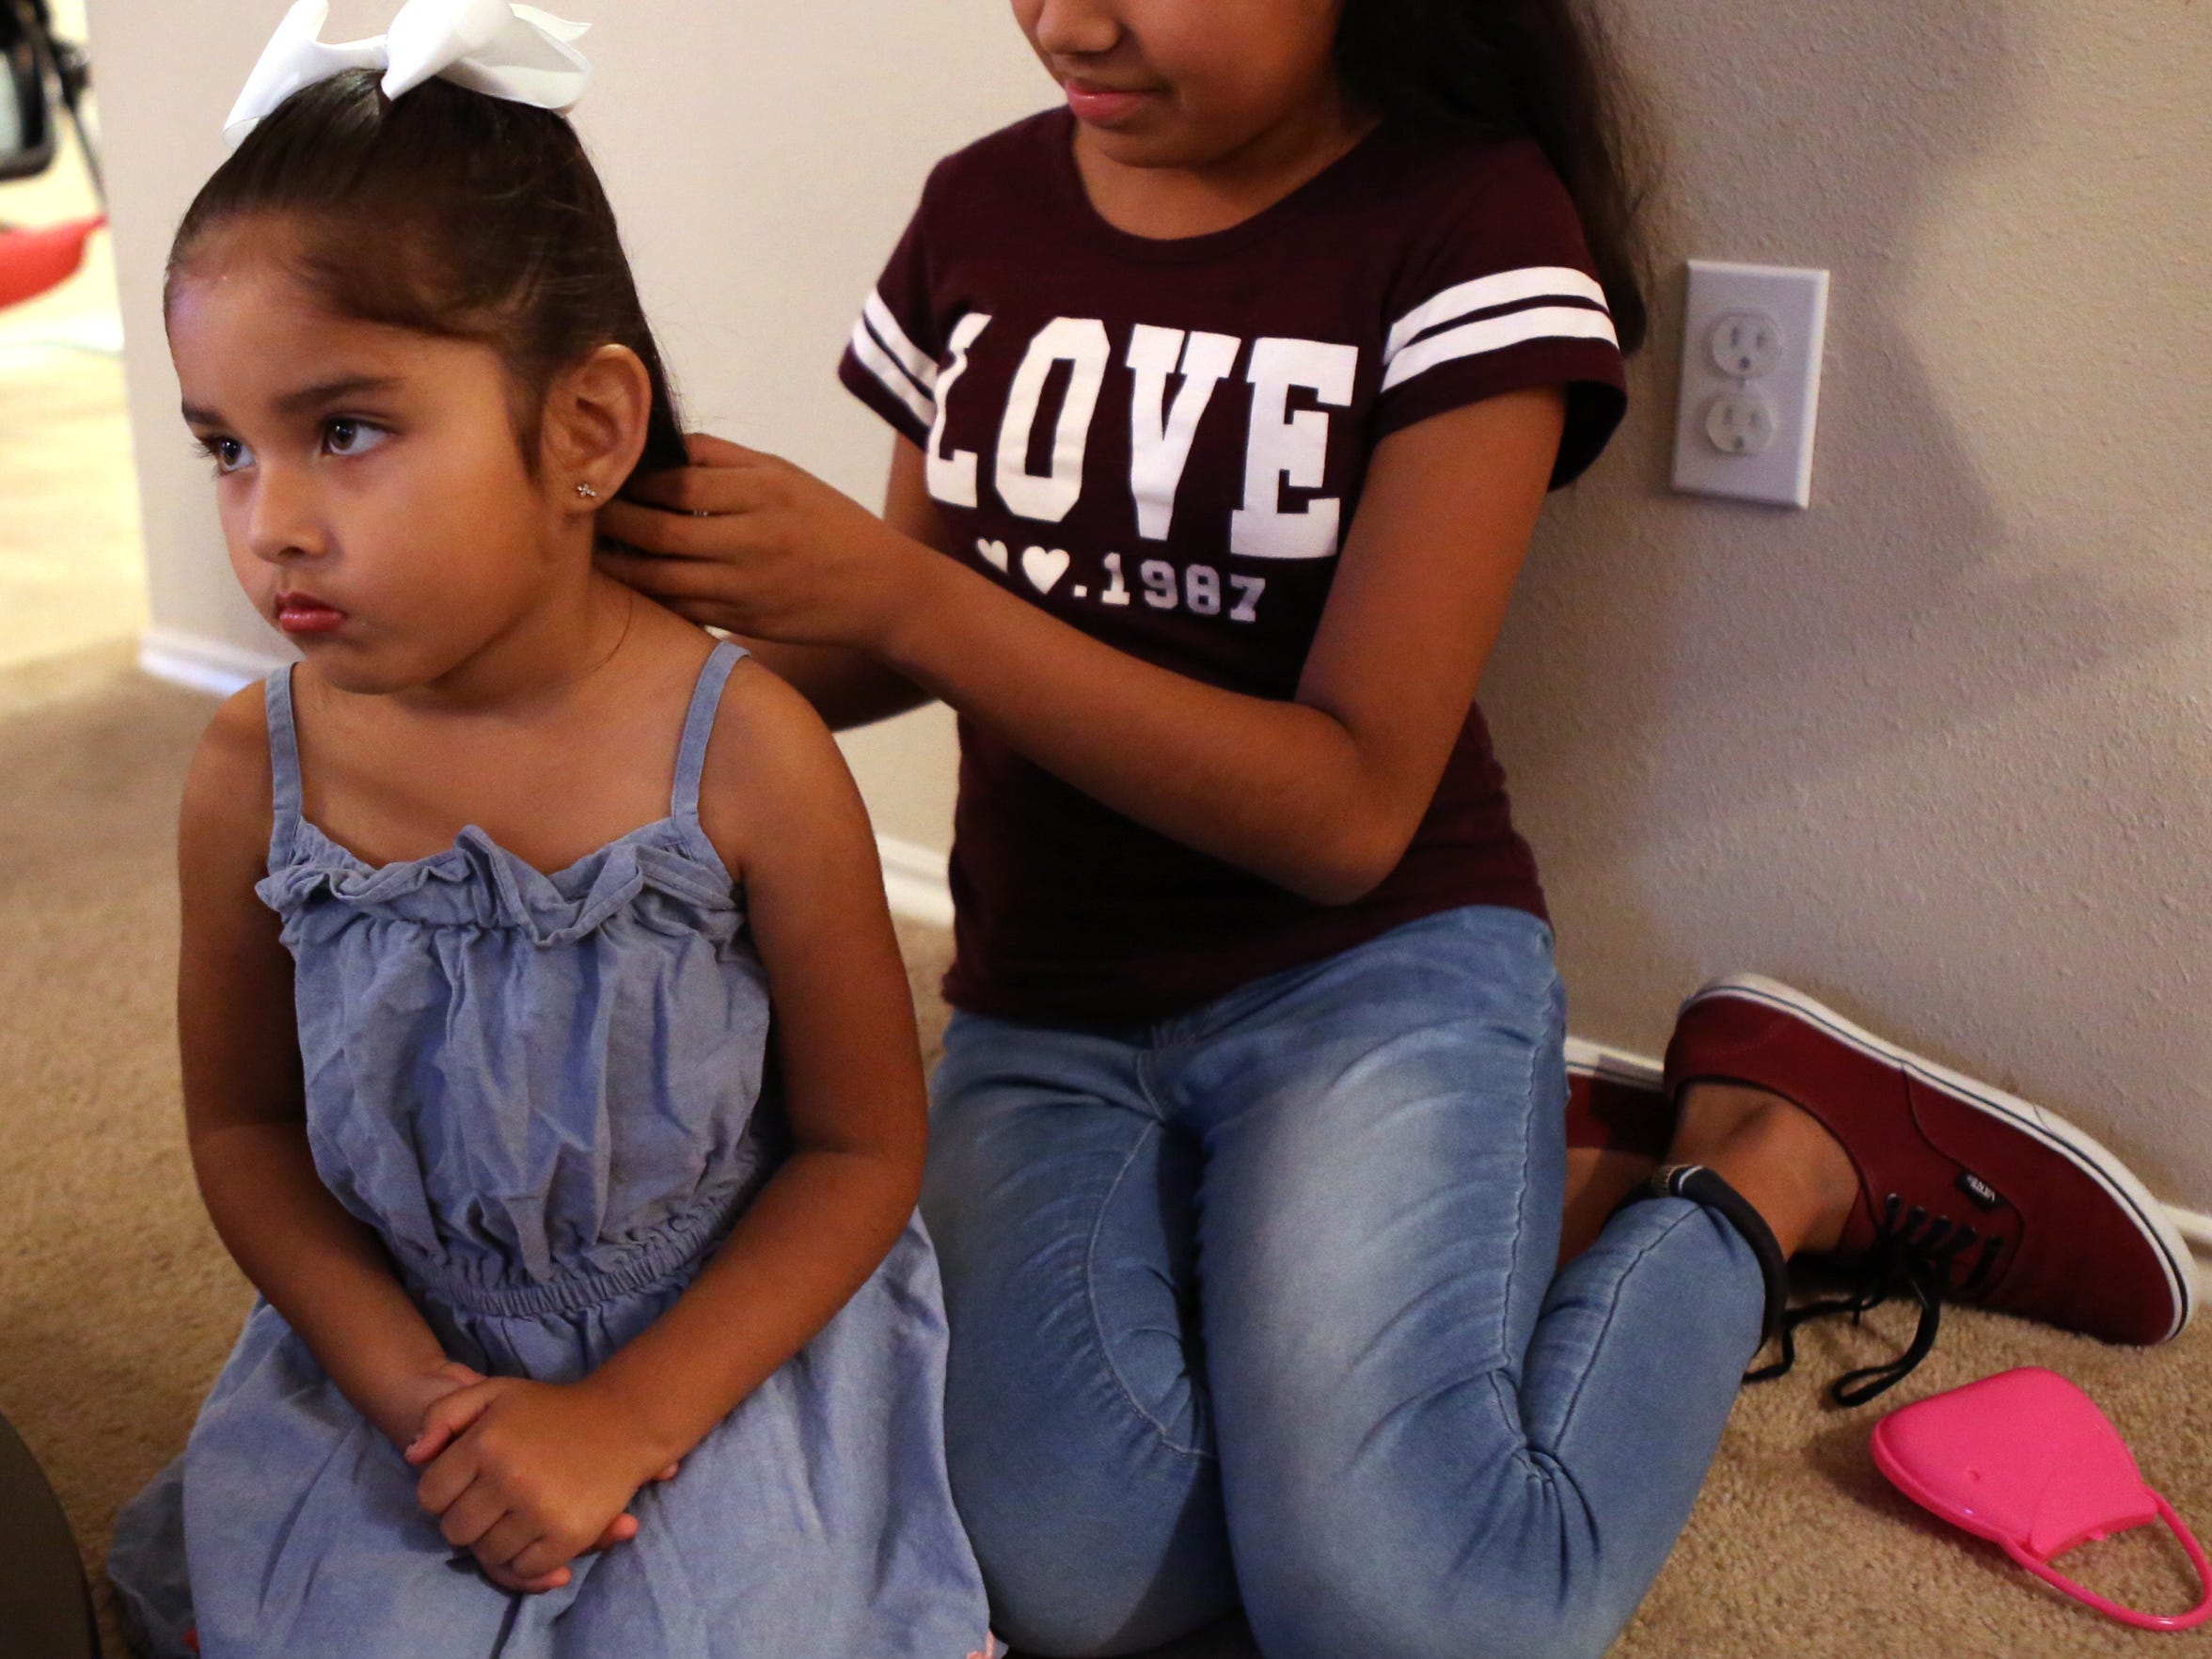 Evalynn Rojas, 4, gets her hair done by her aunt, Alejandra Rojas, 12, while visiting with family on Nov. 2, 2017. Evalynn, who is a U.S. citizen, is the daughter of former DACA recipient Ezequiel Rojas Martinez, who is seeking legal permanent residency.